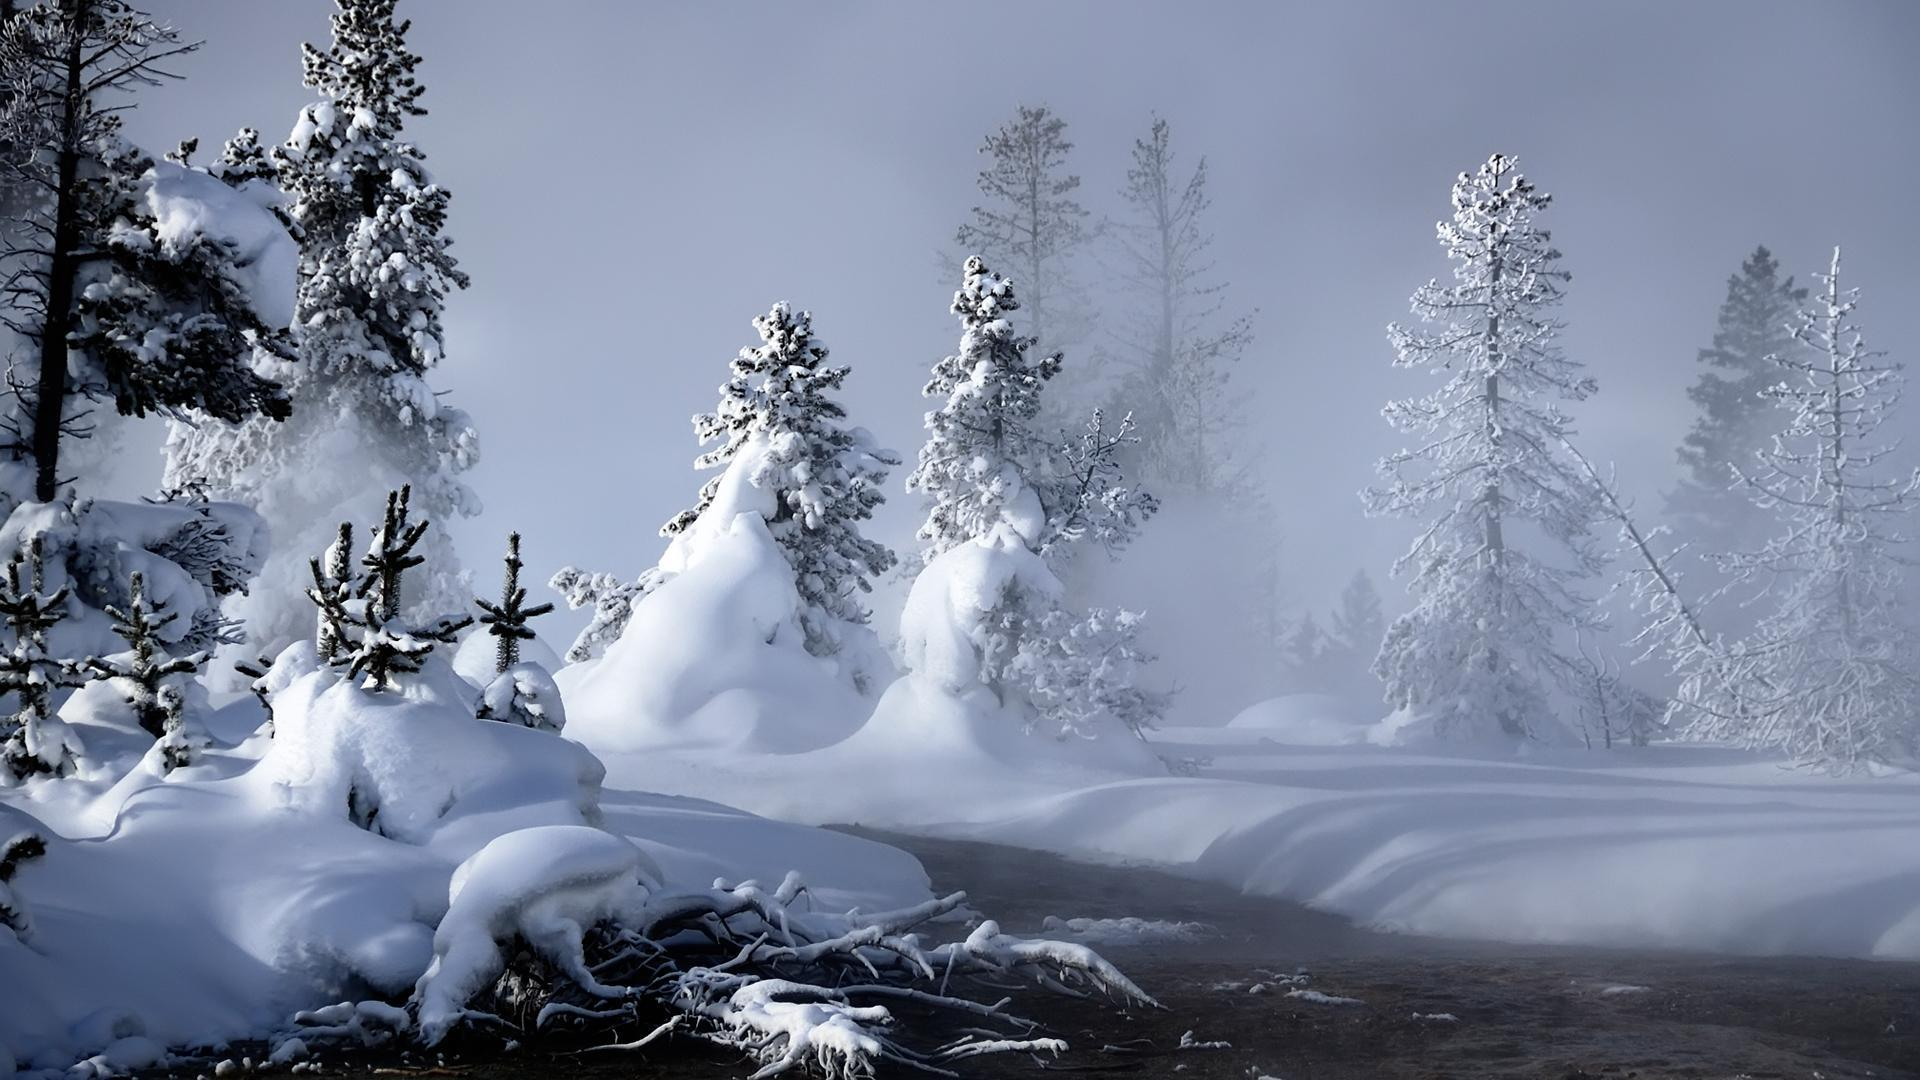 Download Winter 10493 1920x1080 px High Resolution Wallpaper ...